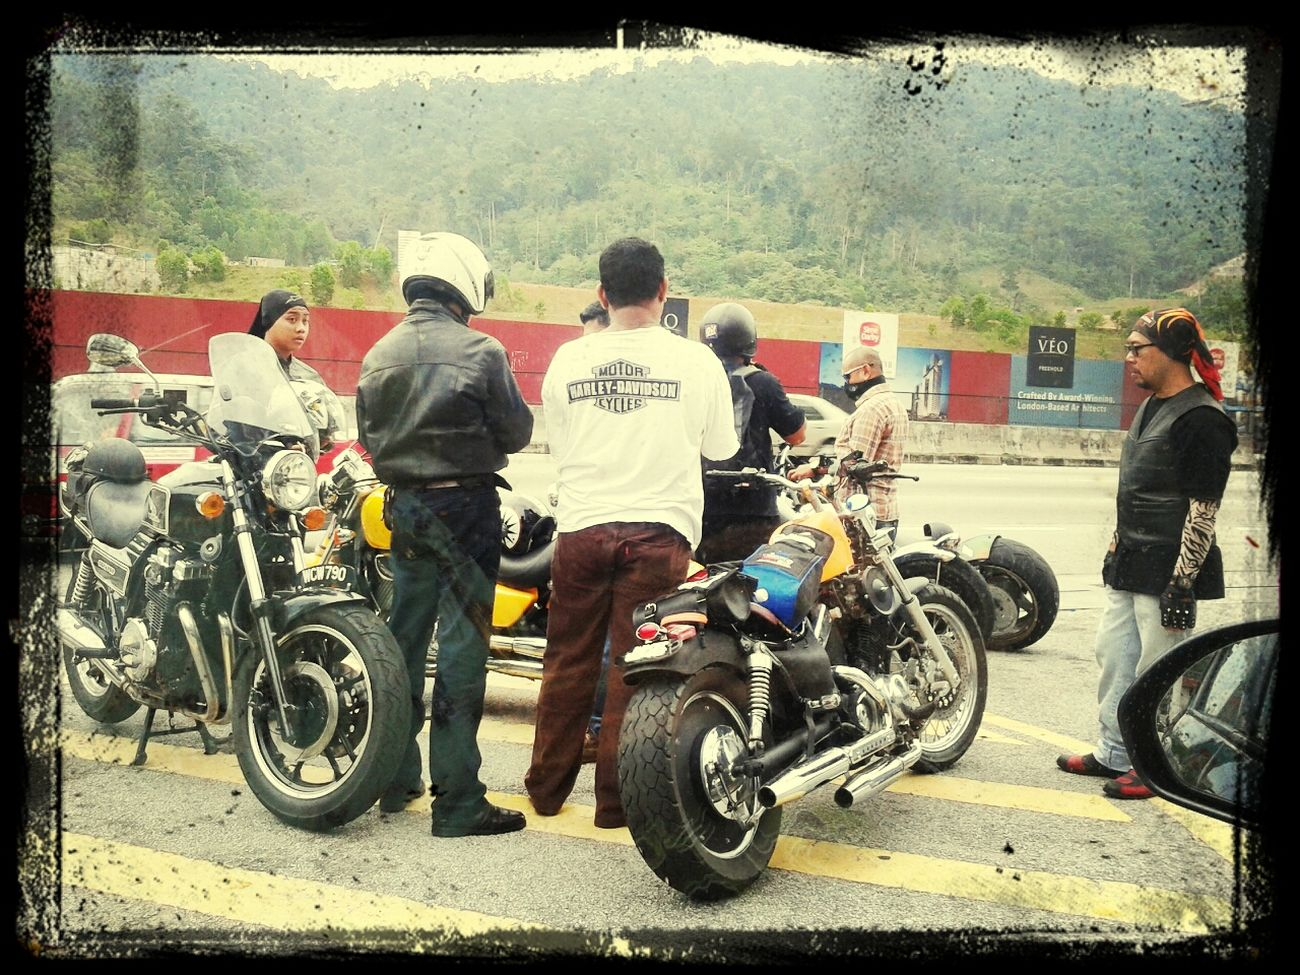 group of bikers konvoi-ing hihi